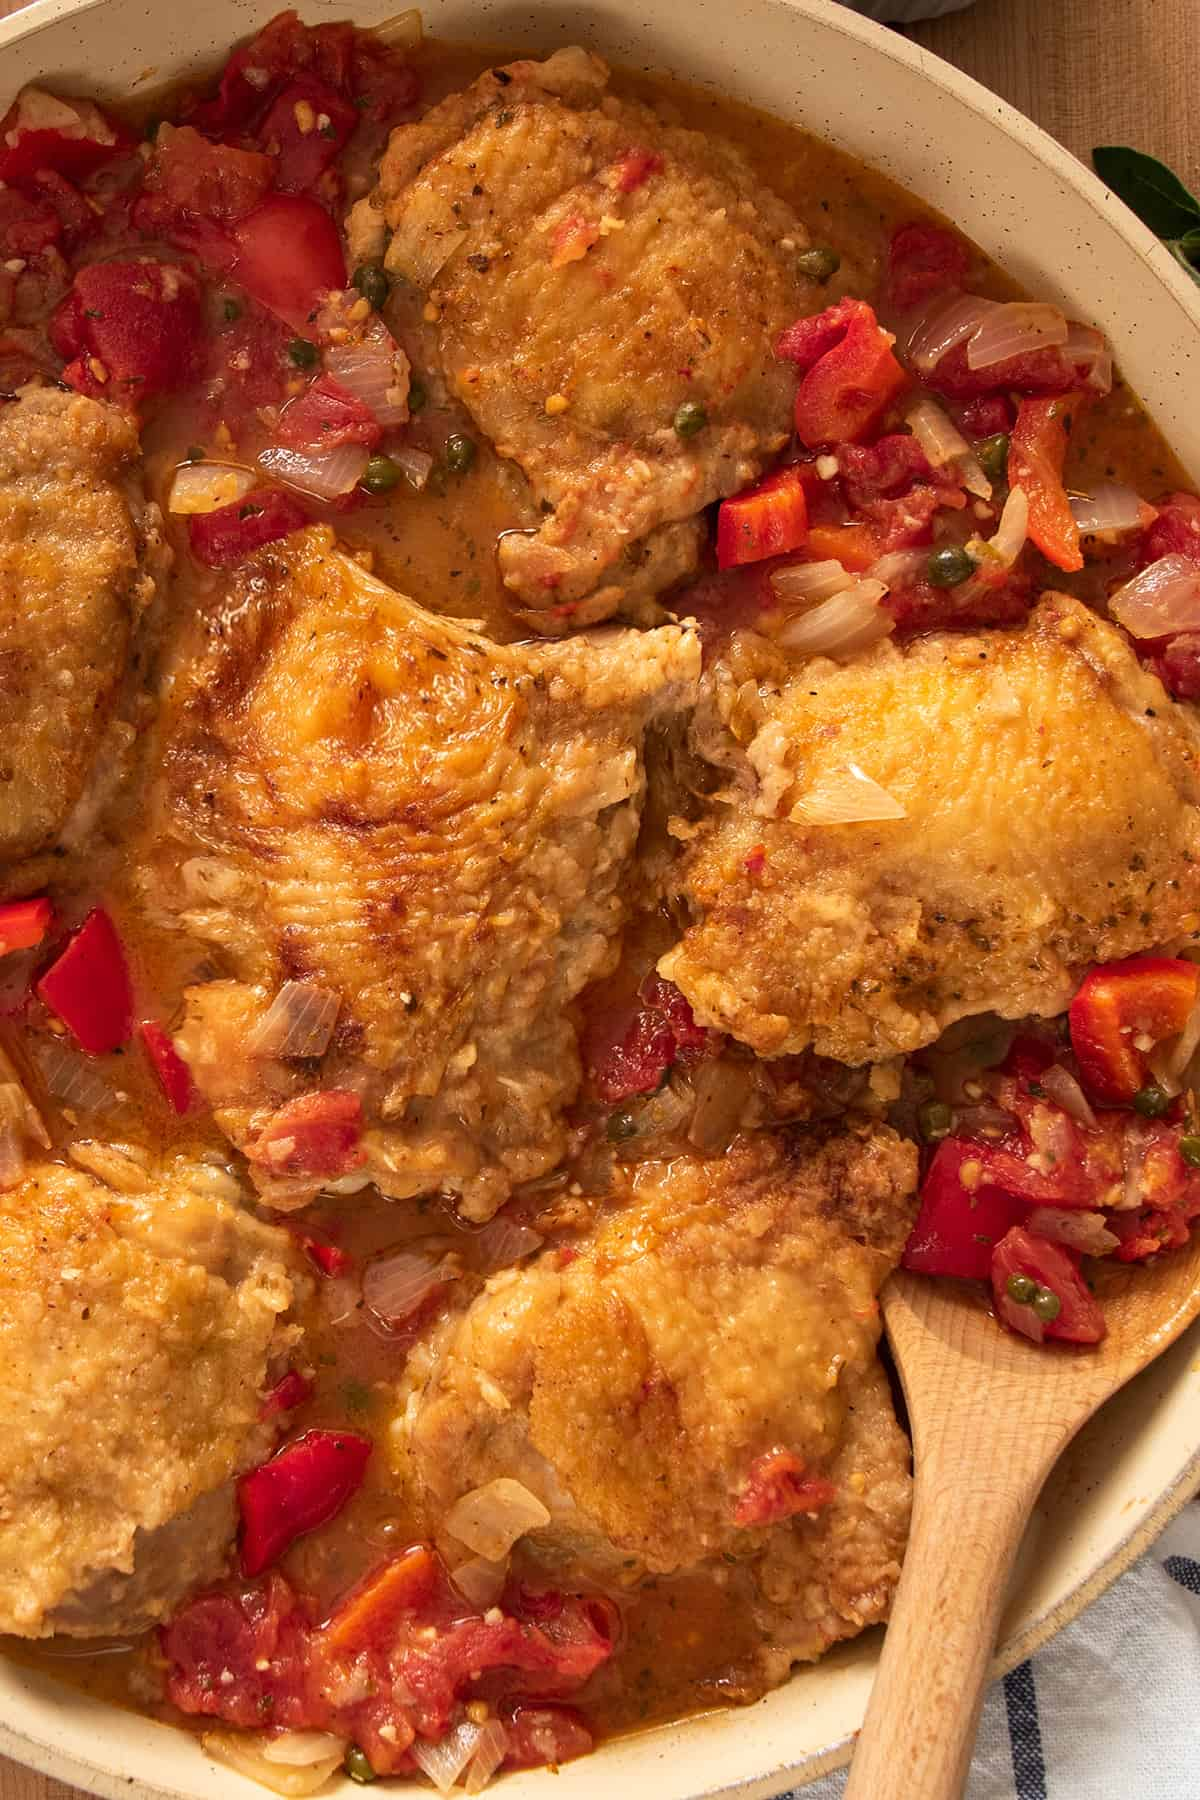 Braised Chicken Cacciatore with peppers and tomatoes stewed in a large skillet.